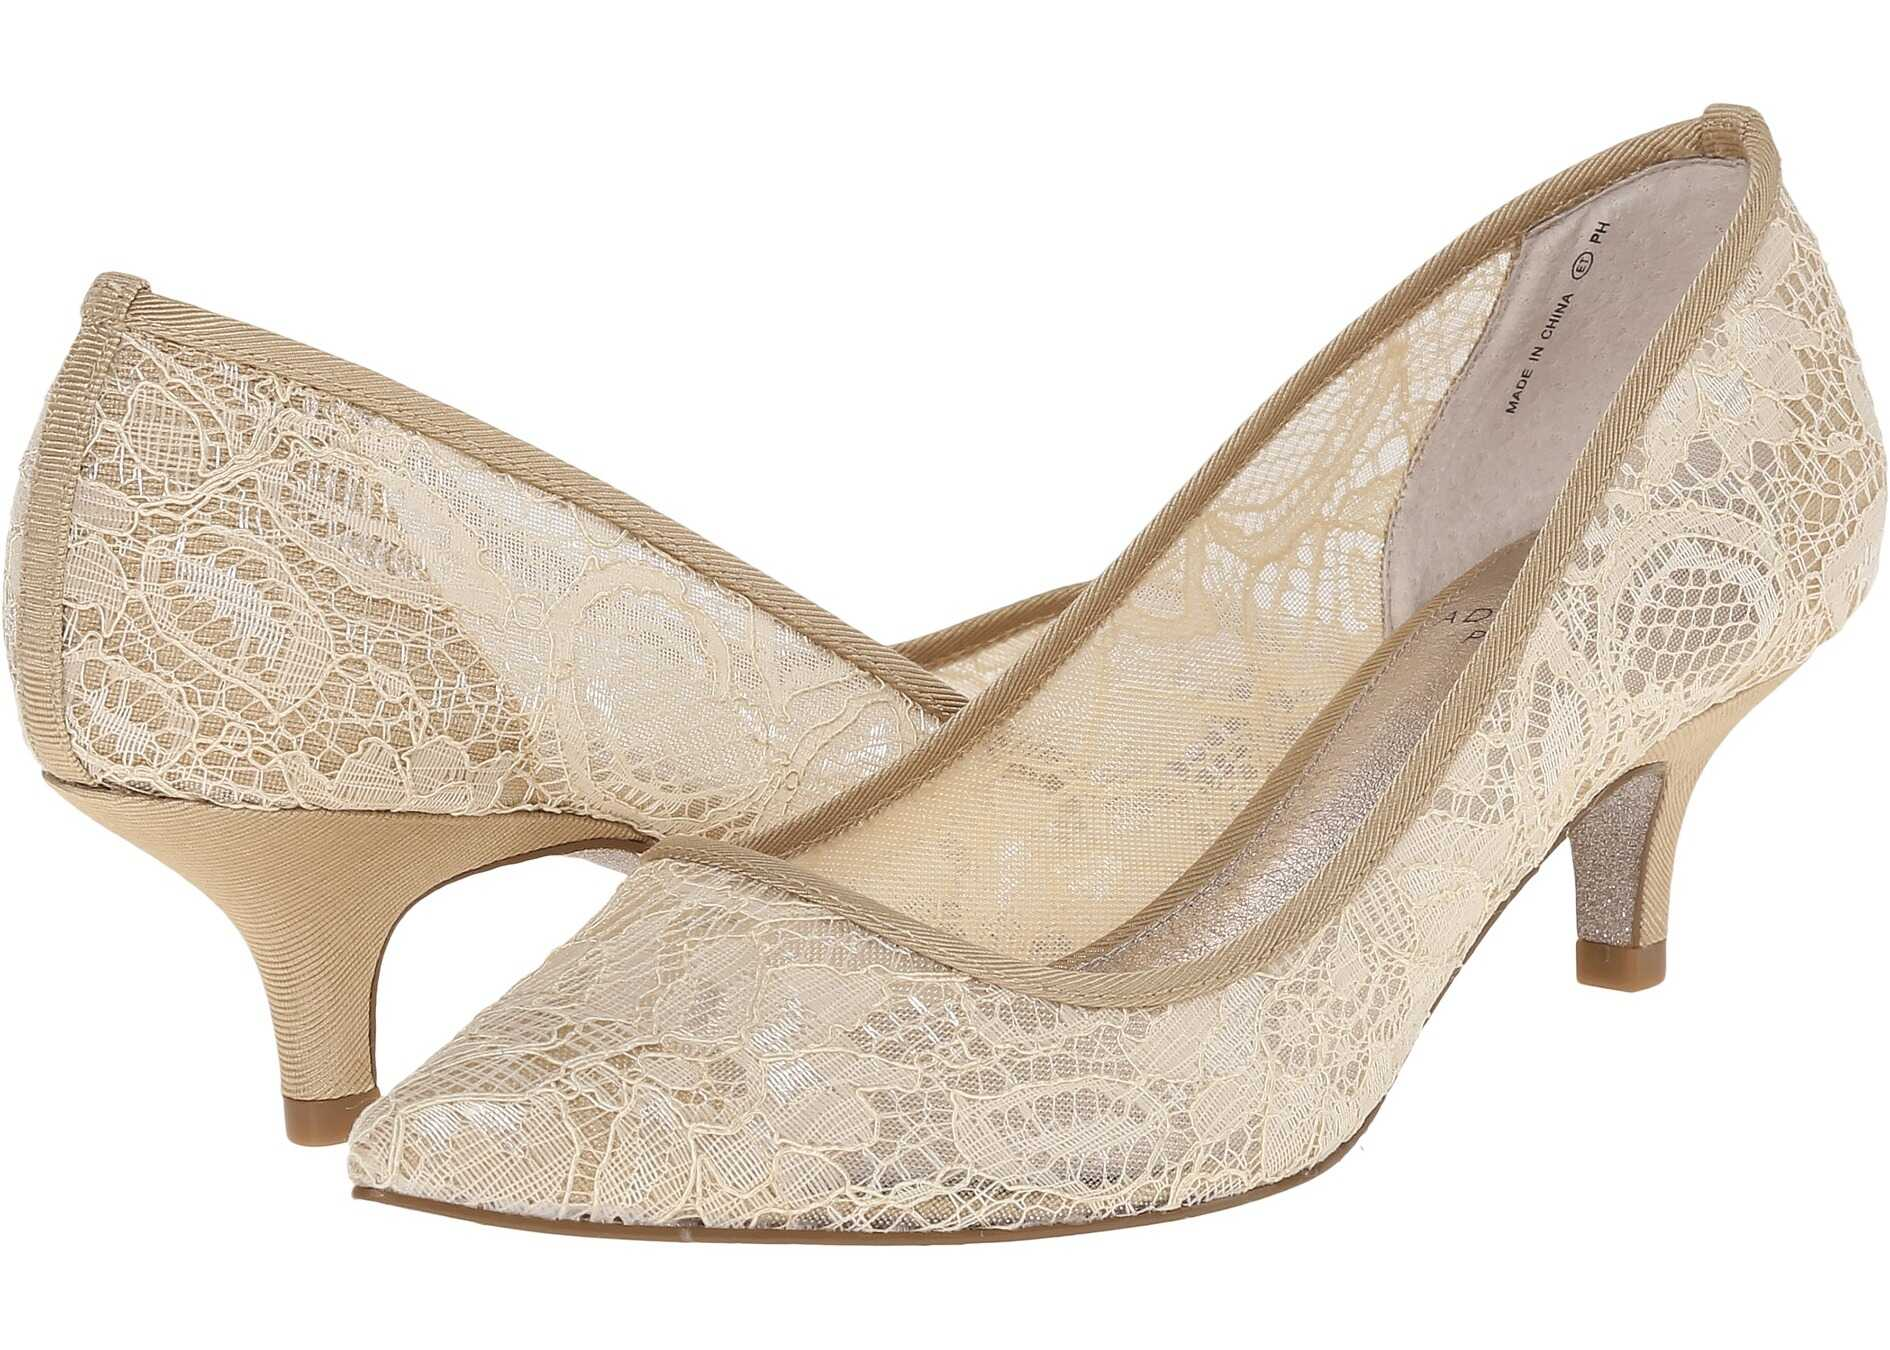 Adrianna Papell Lois Lace Latte 1890 Lace